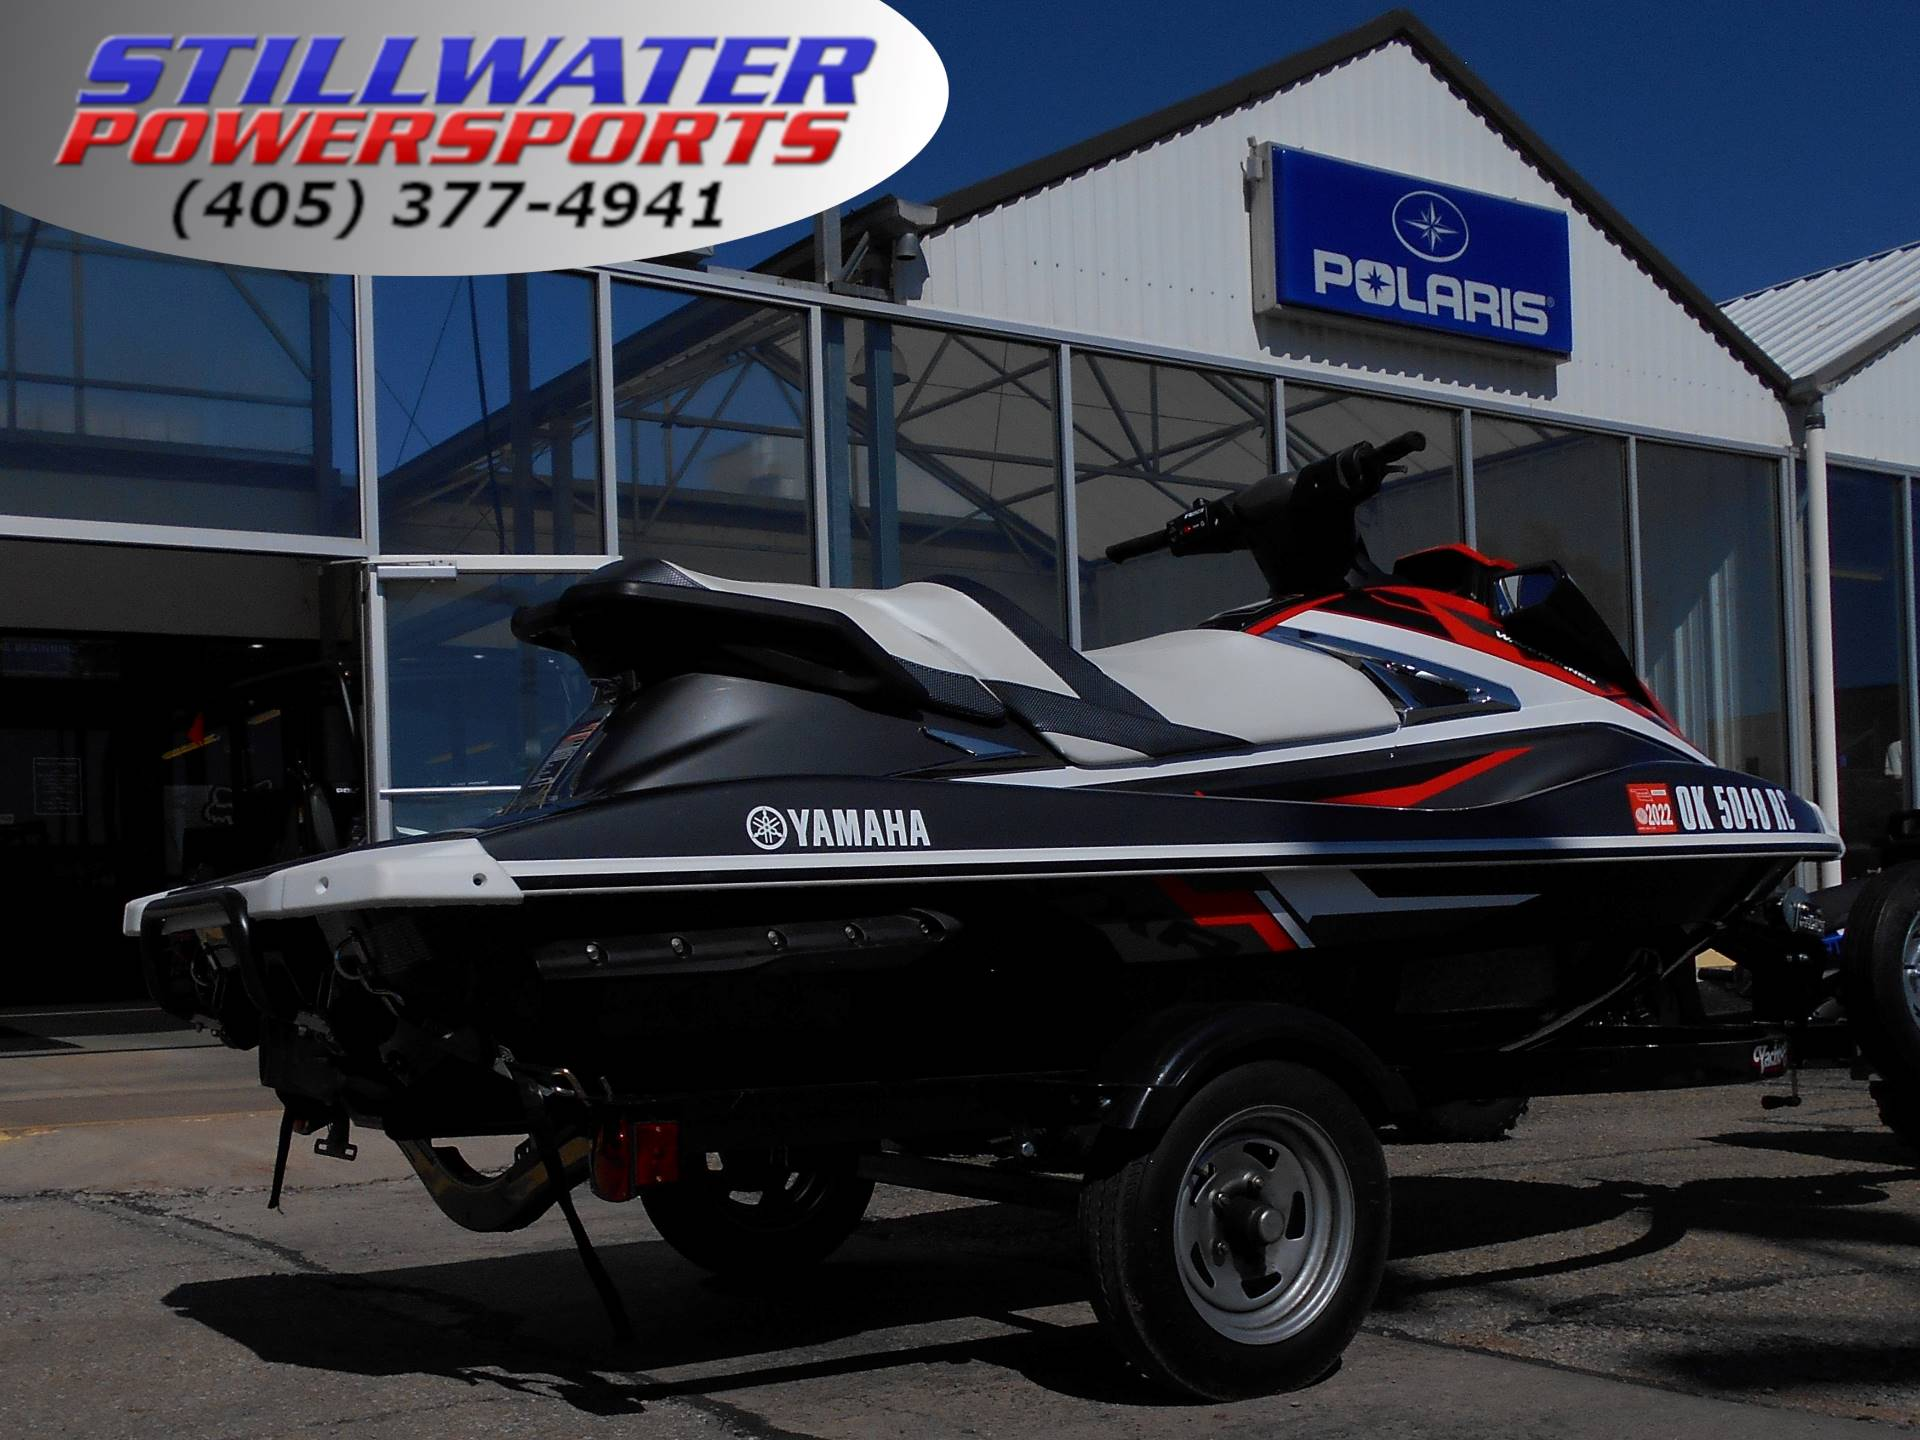 2017 Yamaha VXR in Stillwater, Oklahoma - Photo 2